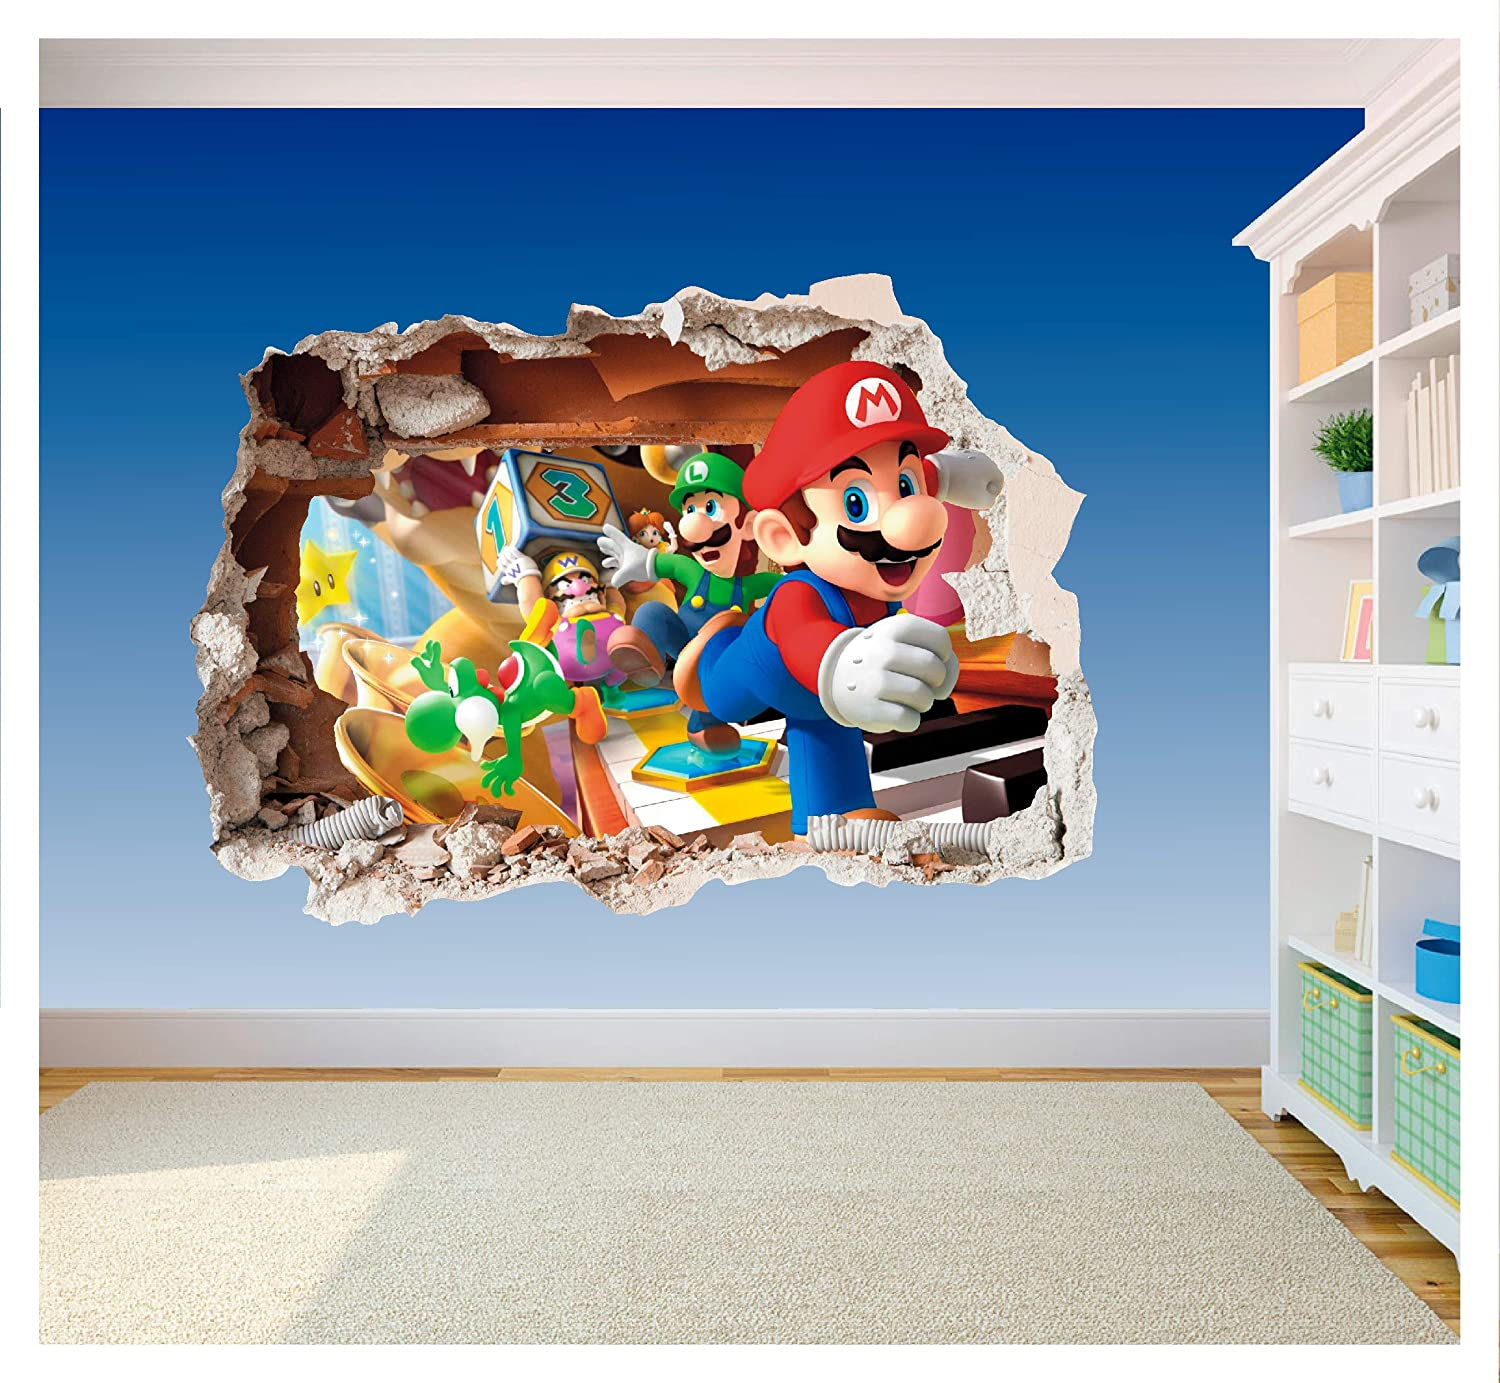 Supersize 1200 x 855mm SS40014 Super Mario Brothers Wall Art hole stampato vinile adesivo decalcomania cameretta dei bambini